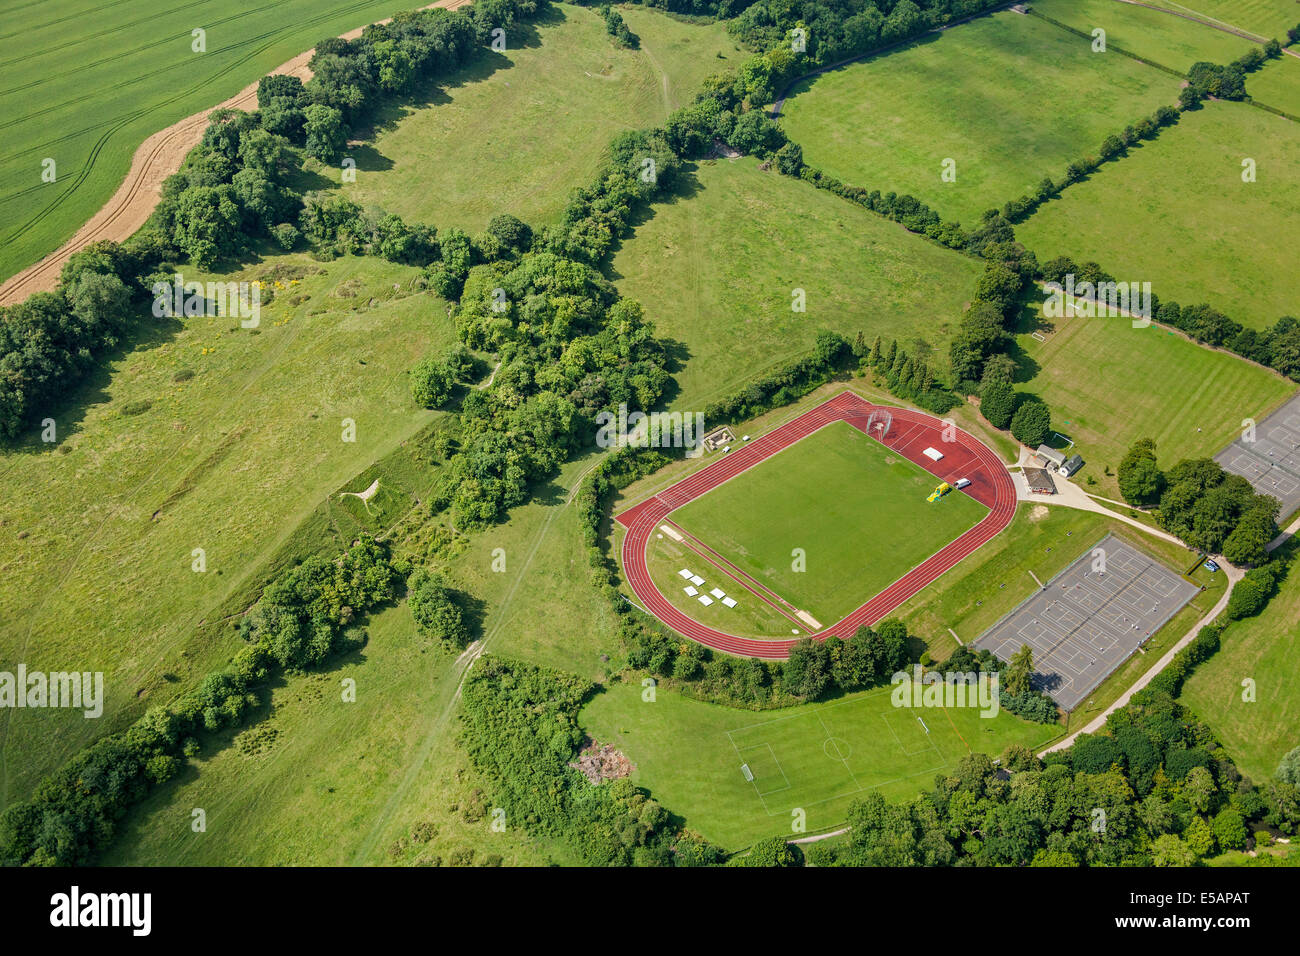 Aerial View Sports Uk Stock Photos Aerial View Sports Uk Stock Images Alamy